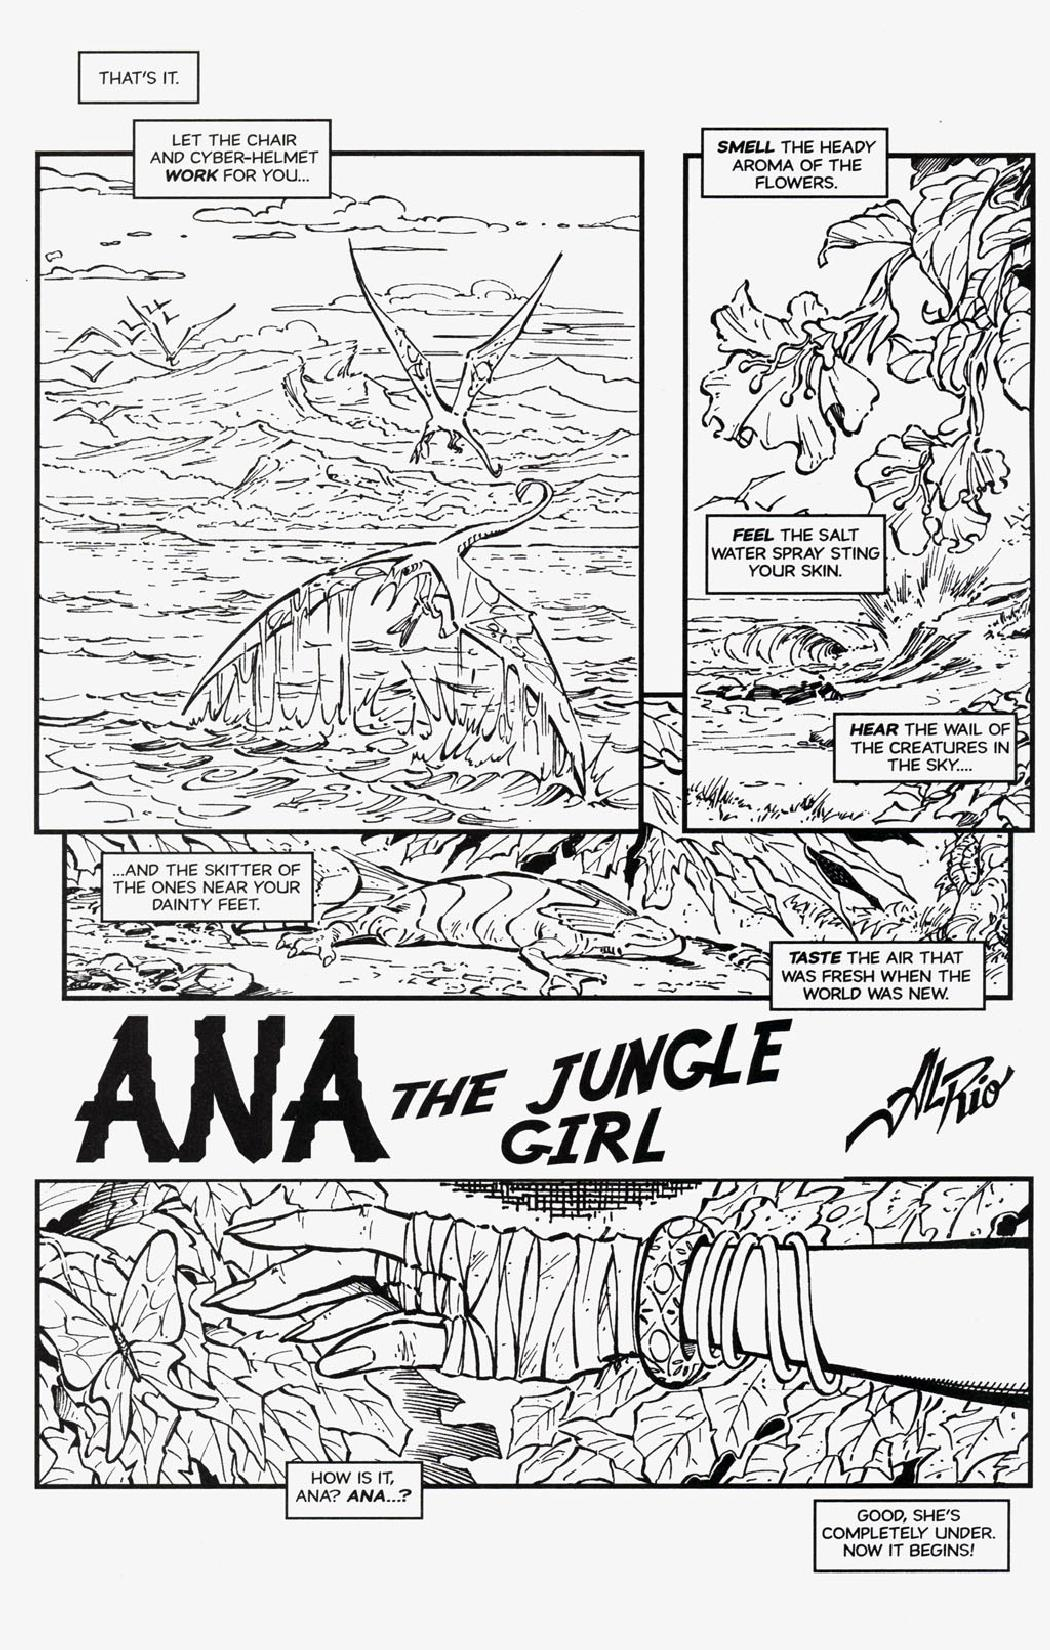 [Al Rio] Ana - Jungle Girl [English]